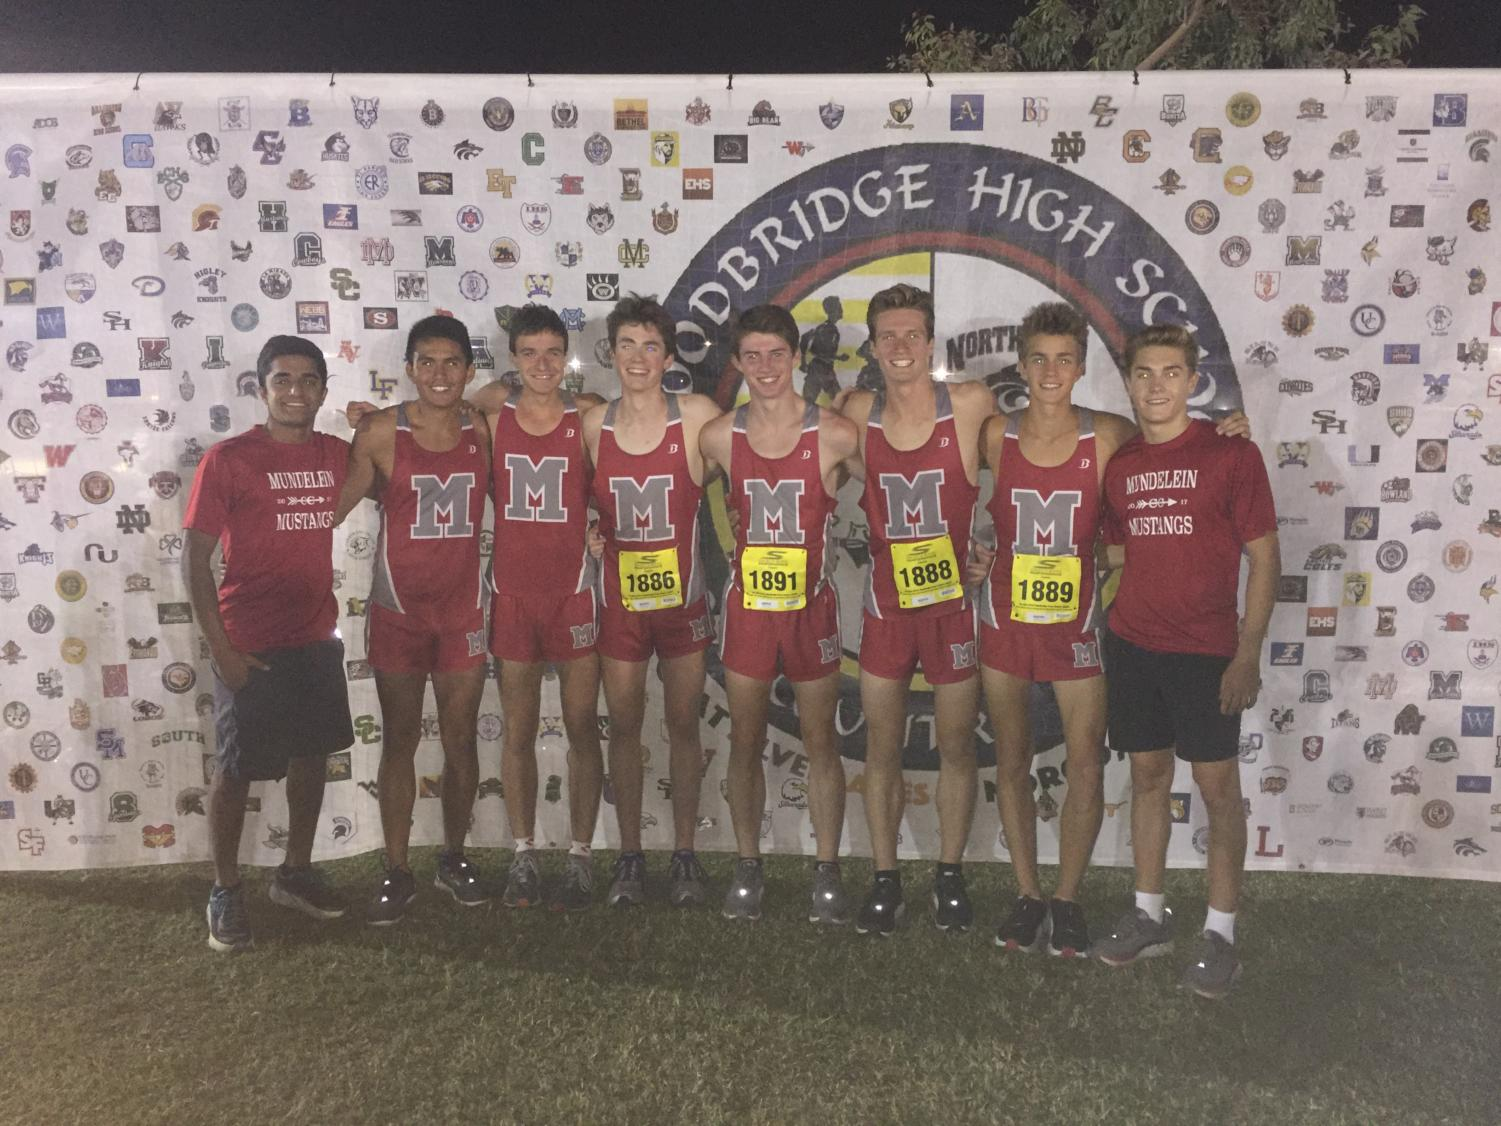 Pictured are the 8 Varsity Cross Country runners that ran at the prestigious meet in California.